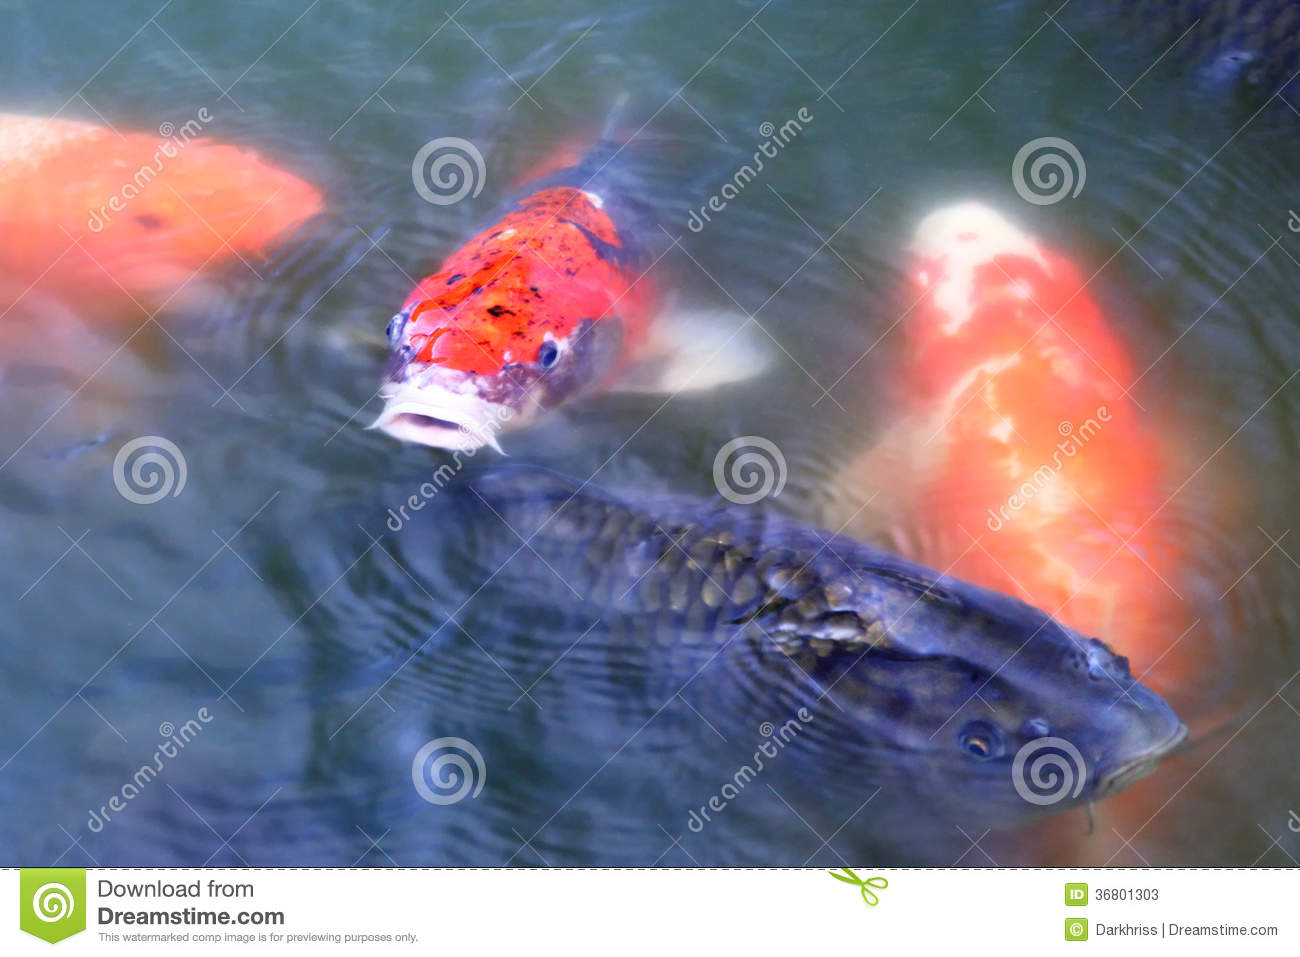 Japanese carp koi fish stock image image of summer for Japanese koi carp fish